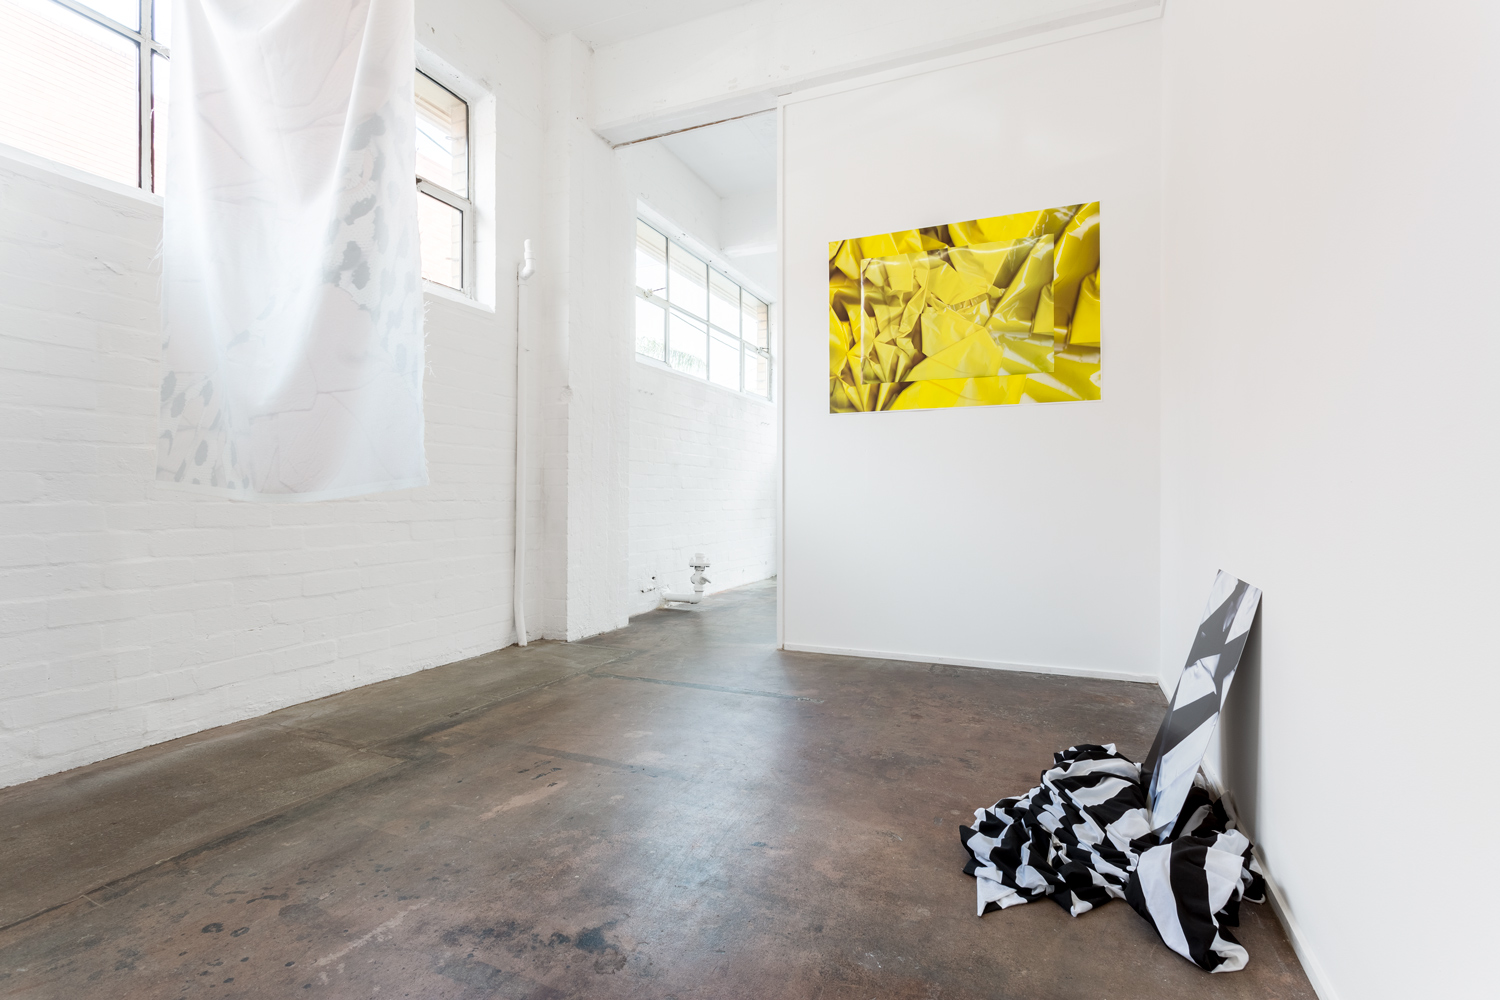 Installation view of exhibition  A Loud Cellophane at Bus Projects, Melbourne 2018  L-R: Jumper, A Loud Cellophane, WB  Photo: Christo Crocker